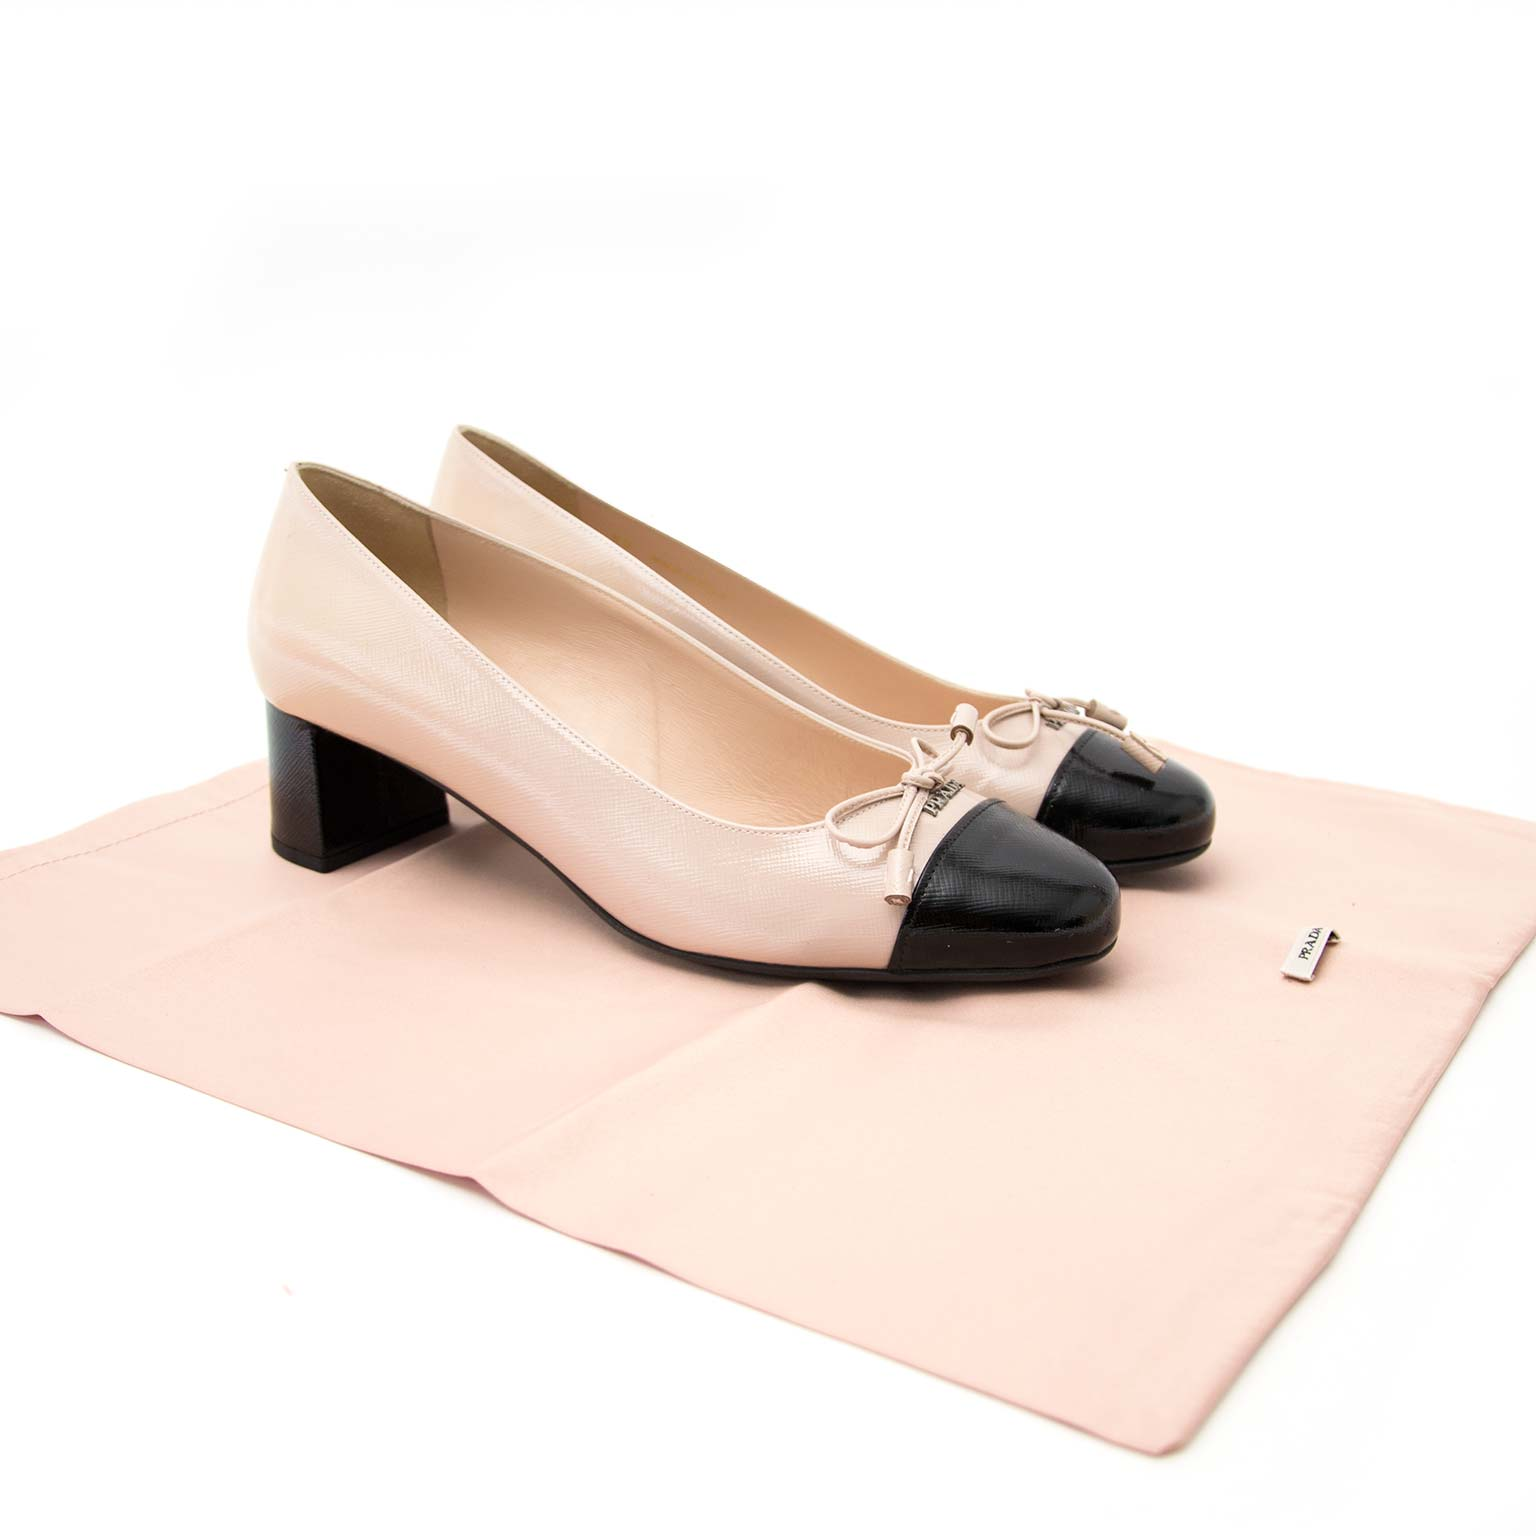 prada black and nude patent heels now online at labellov.com for the best price